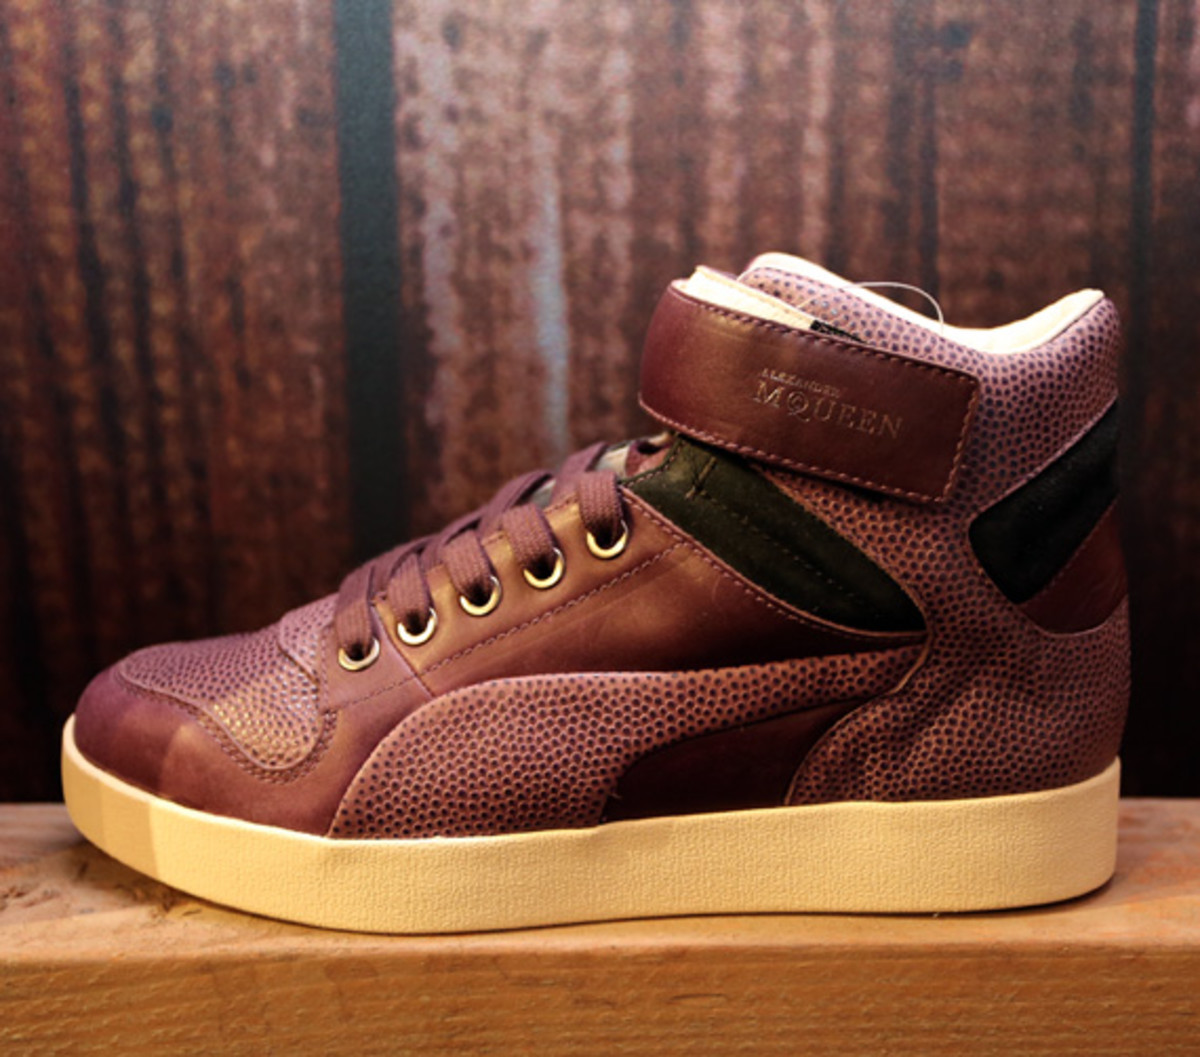 project-lv-puma-alexander-mcqueen-fall-2013-preview-04